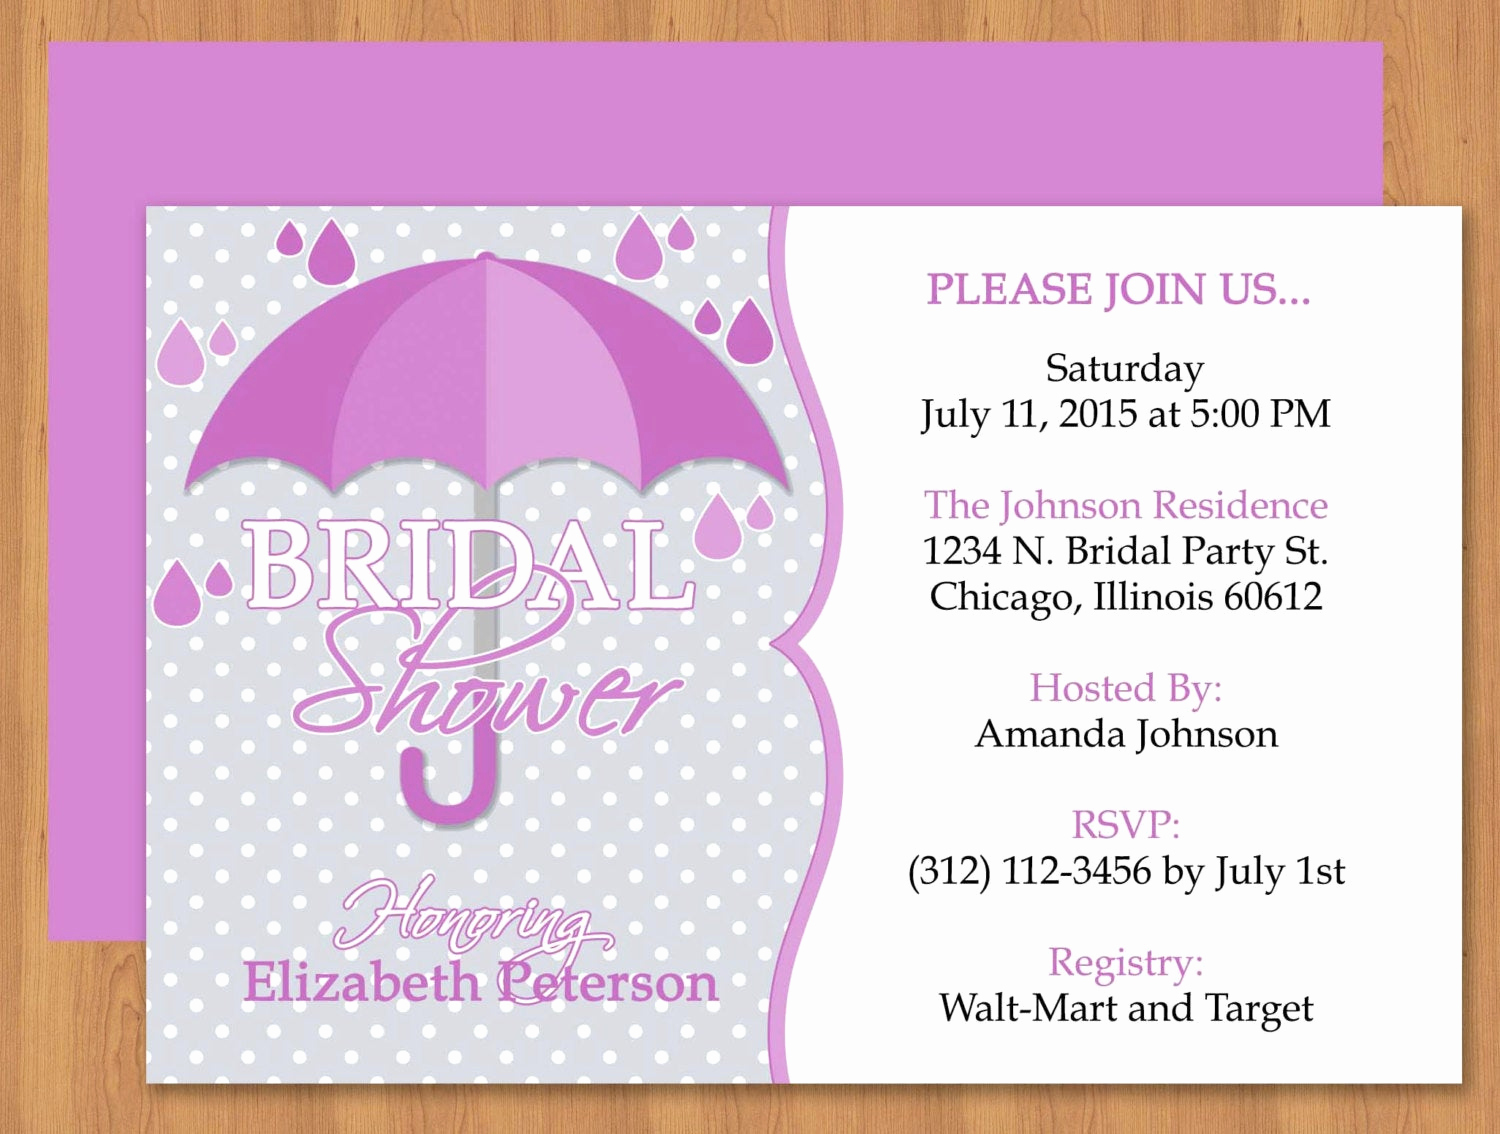 Bridal Shower Invitation Templates Inspirational Purple Umbrella Bridal Shower Invitation Editable Template